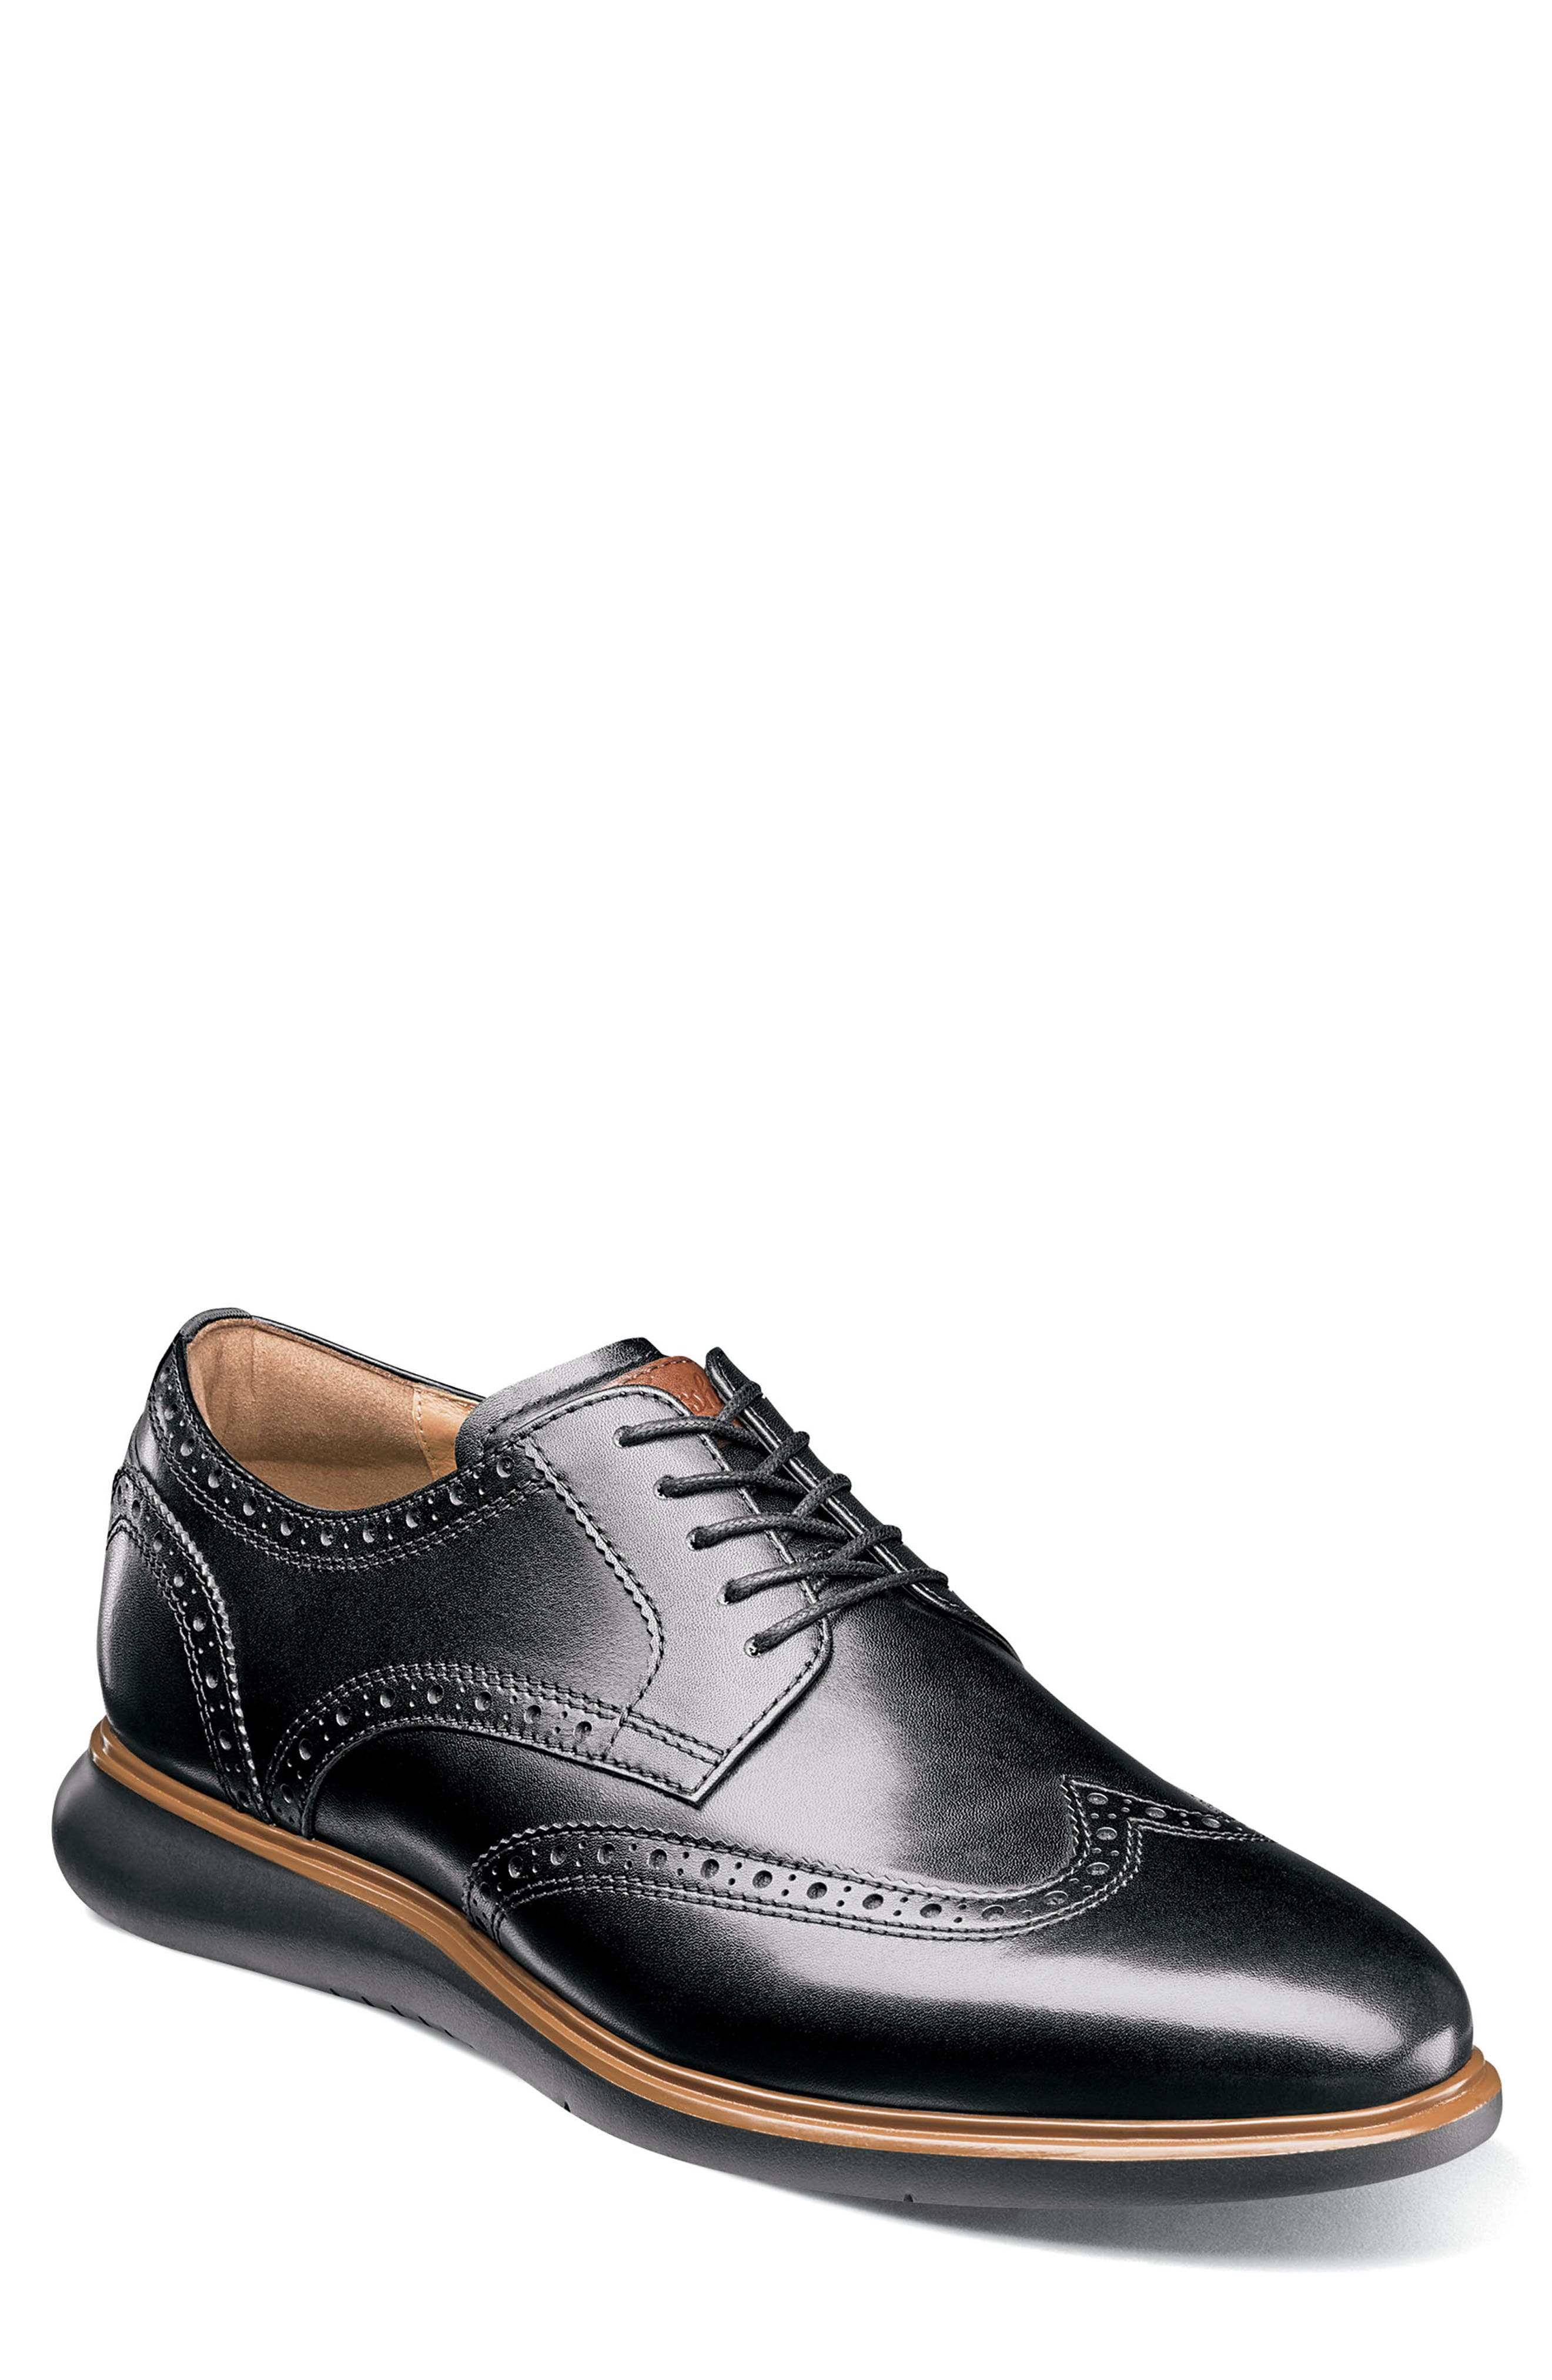 FLORSHEIM Fuel Wingtip, Main, color, BLACK LEATHER